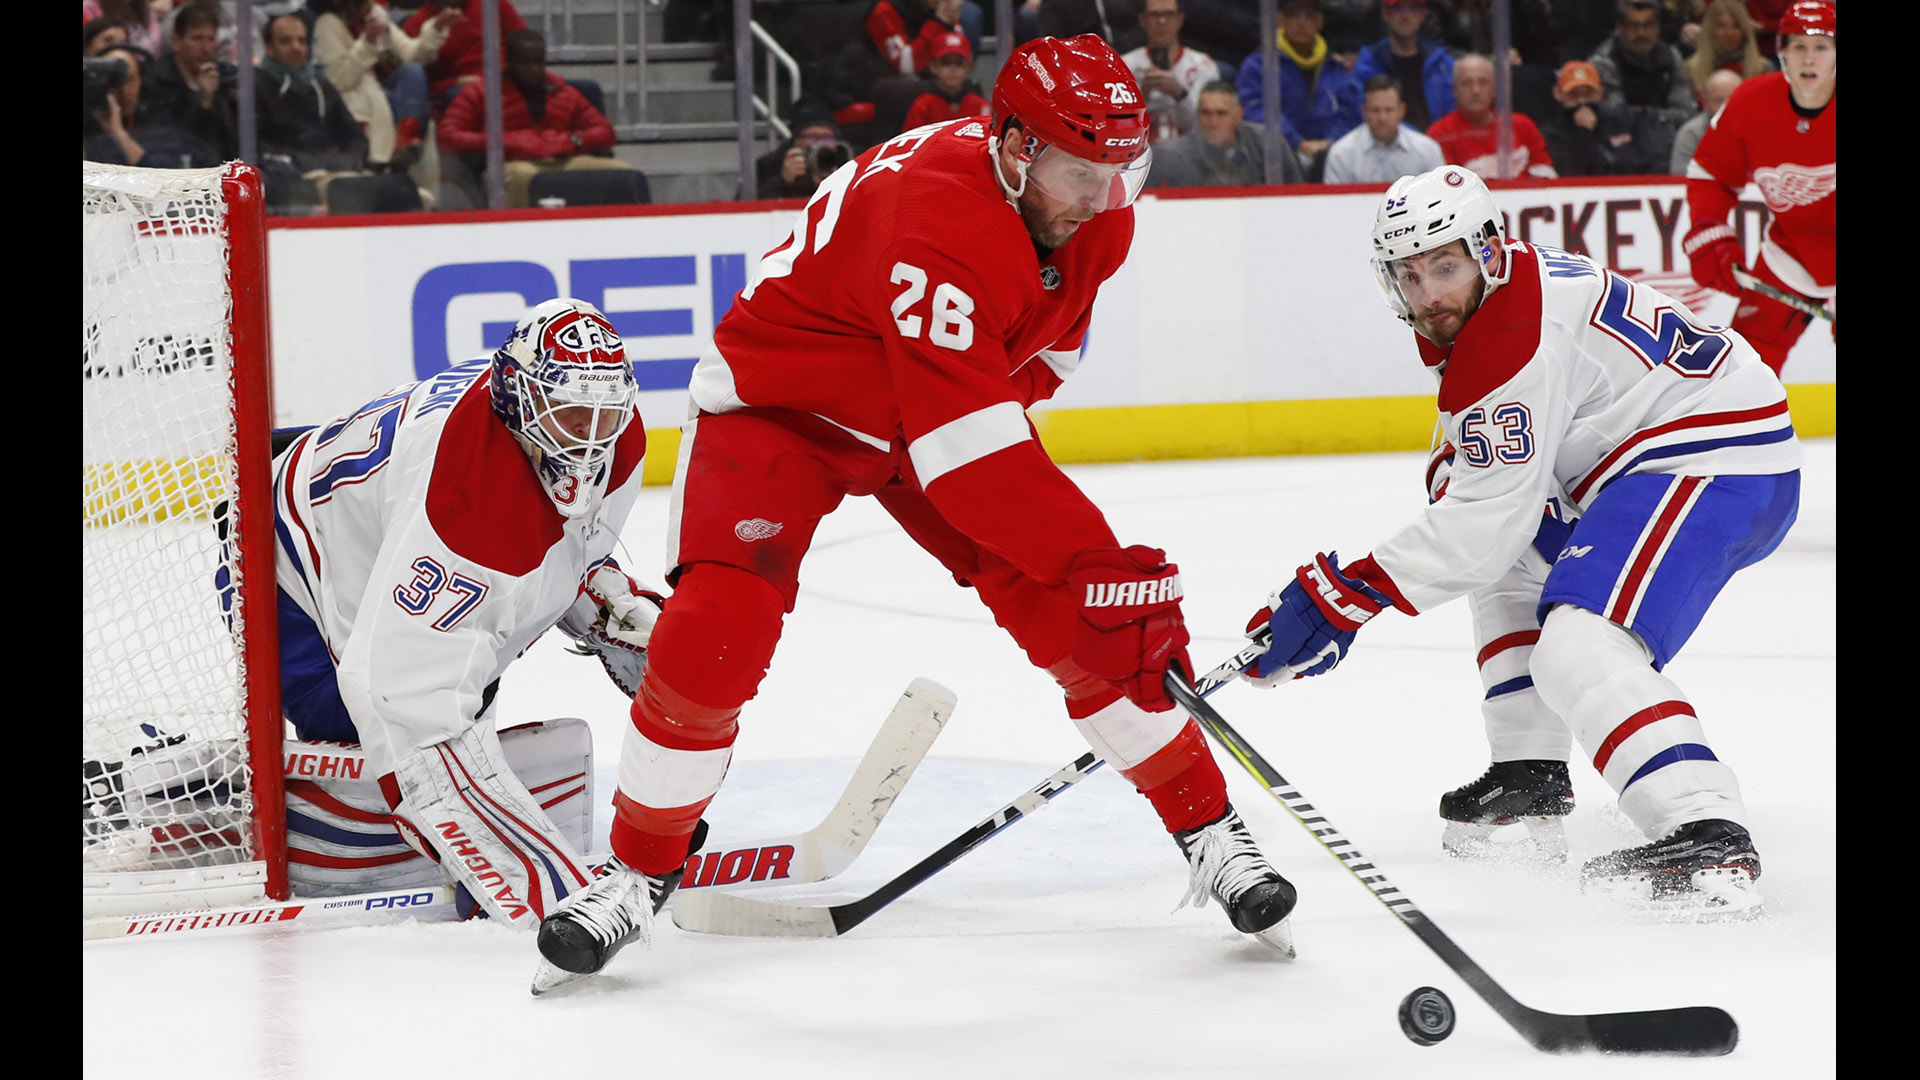 detroit red wings montreal canadiens 010819 AP_1547004568517